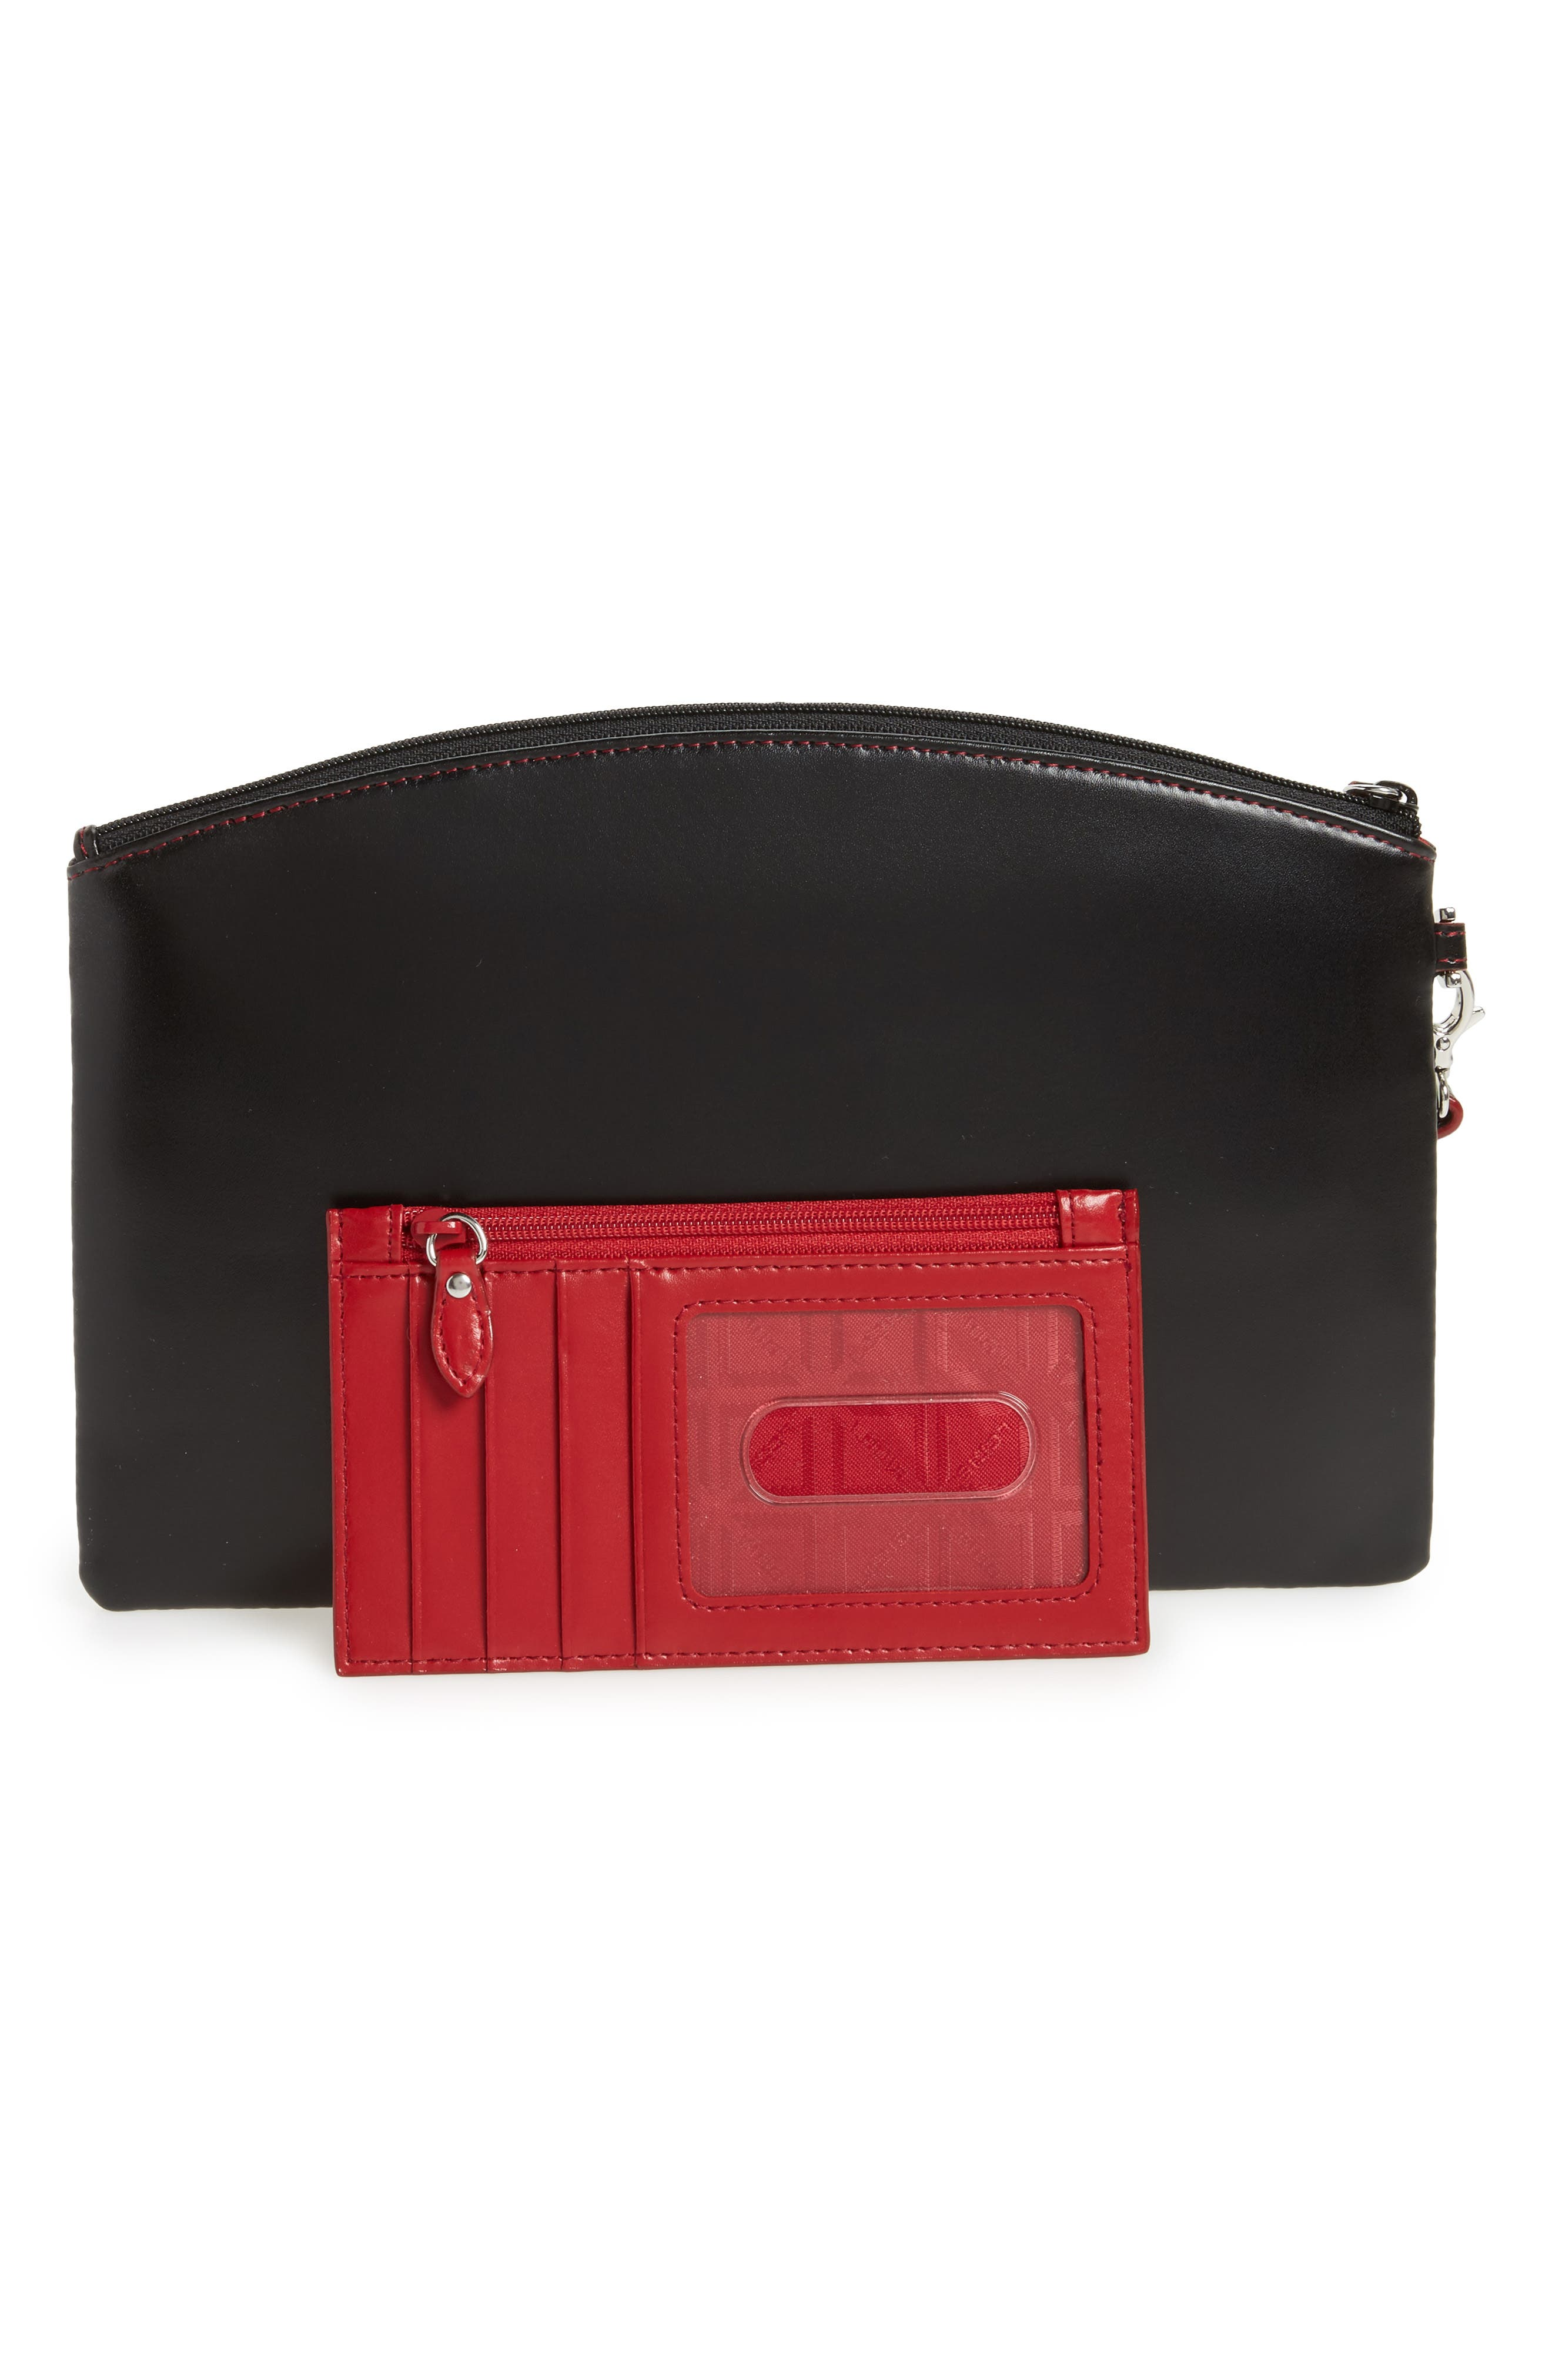 Miley Leather Wristlet & RFID Card Case,                         Main,                         color, Black